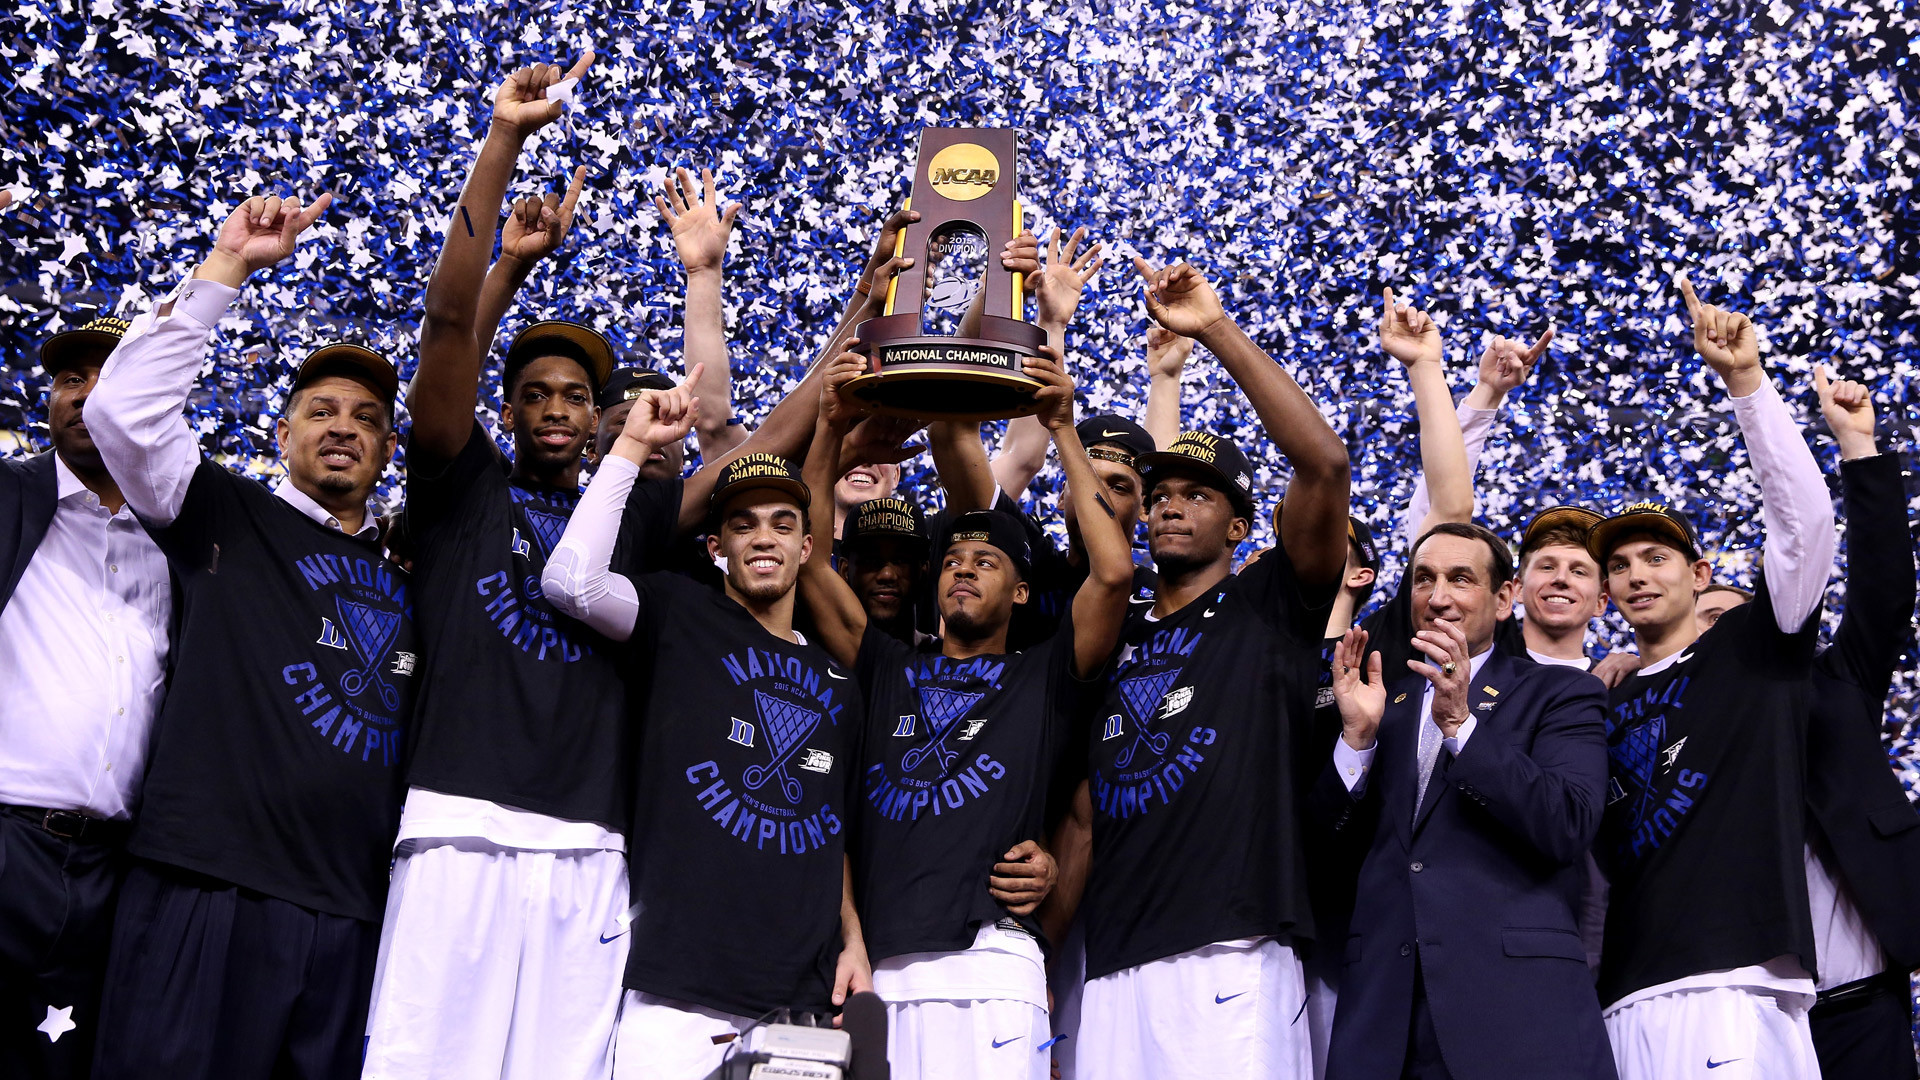 1920x1080 0 Wallpapers Nike 2016 Why Duke is the Best College Basketball Program The  Game Ha